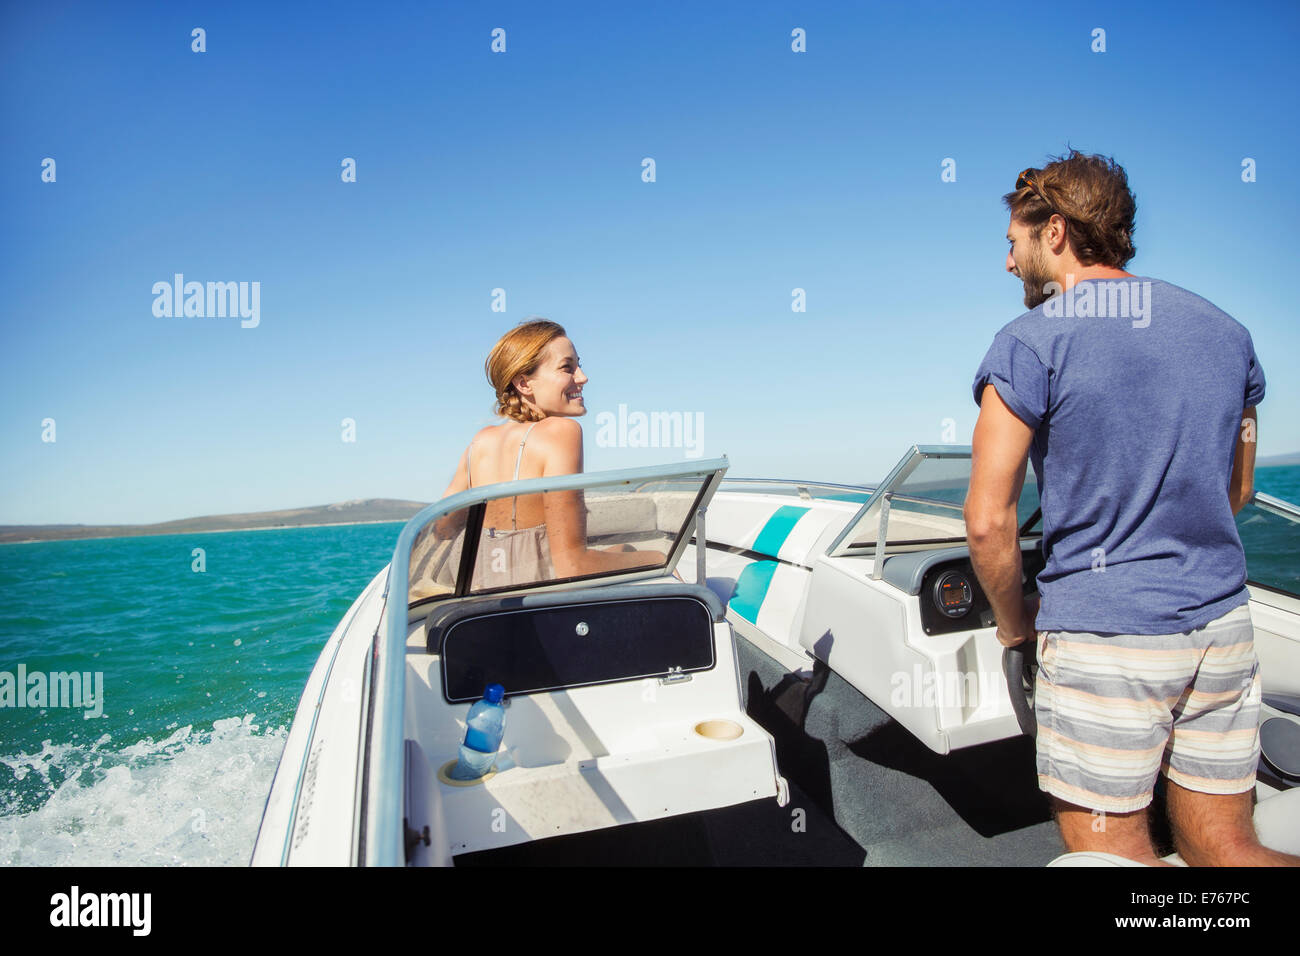 Man steering boat with girlfriend - Stock Image